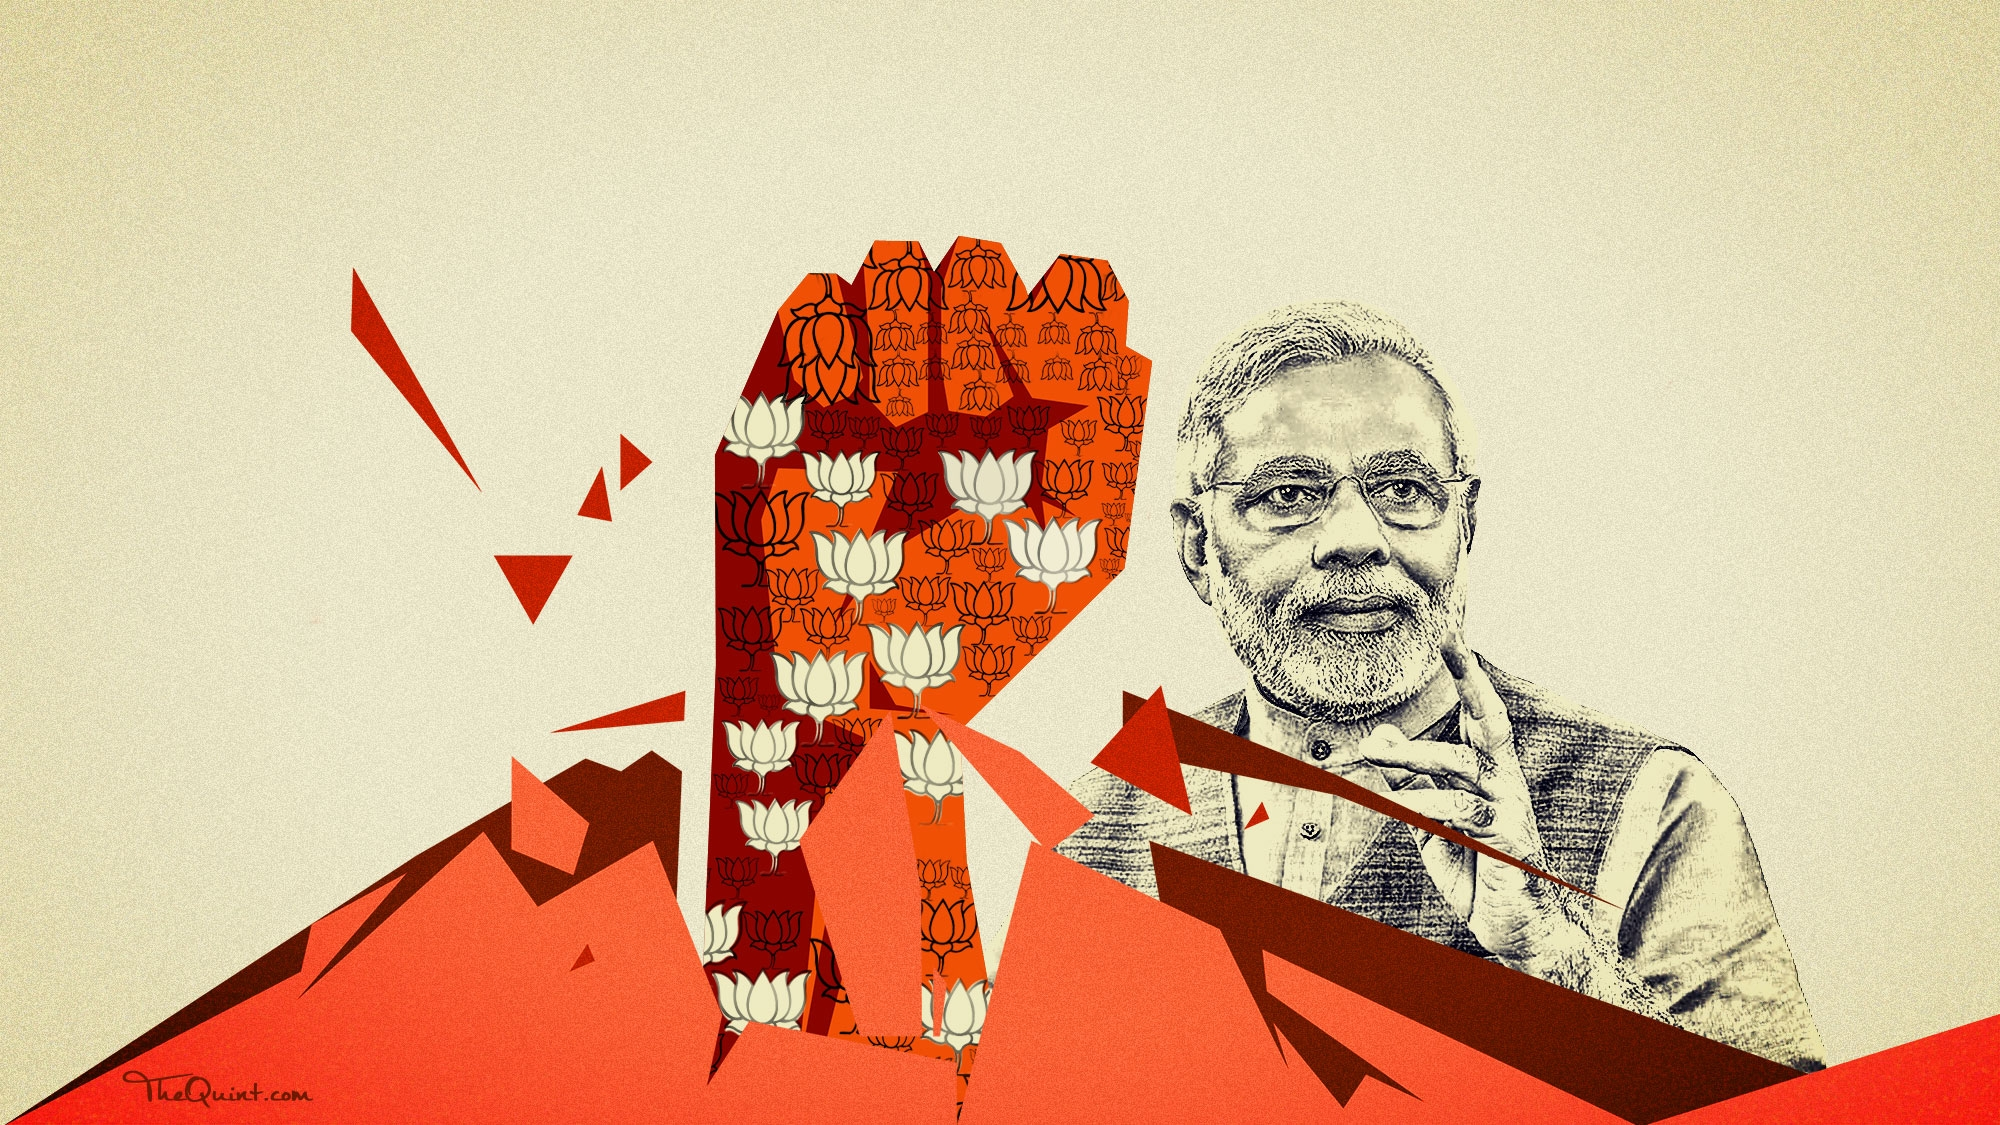 Arithmetic Behind BJP's One Nation, One Election Plan in 4 Charts